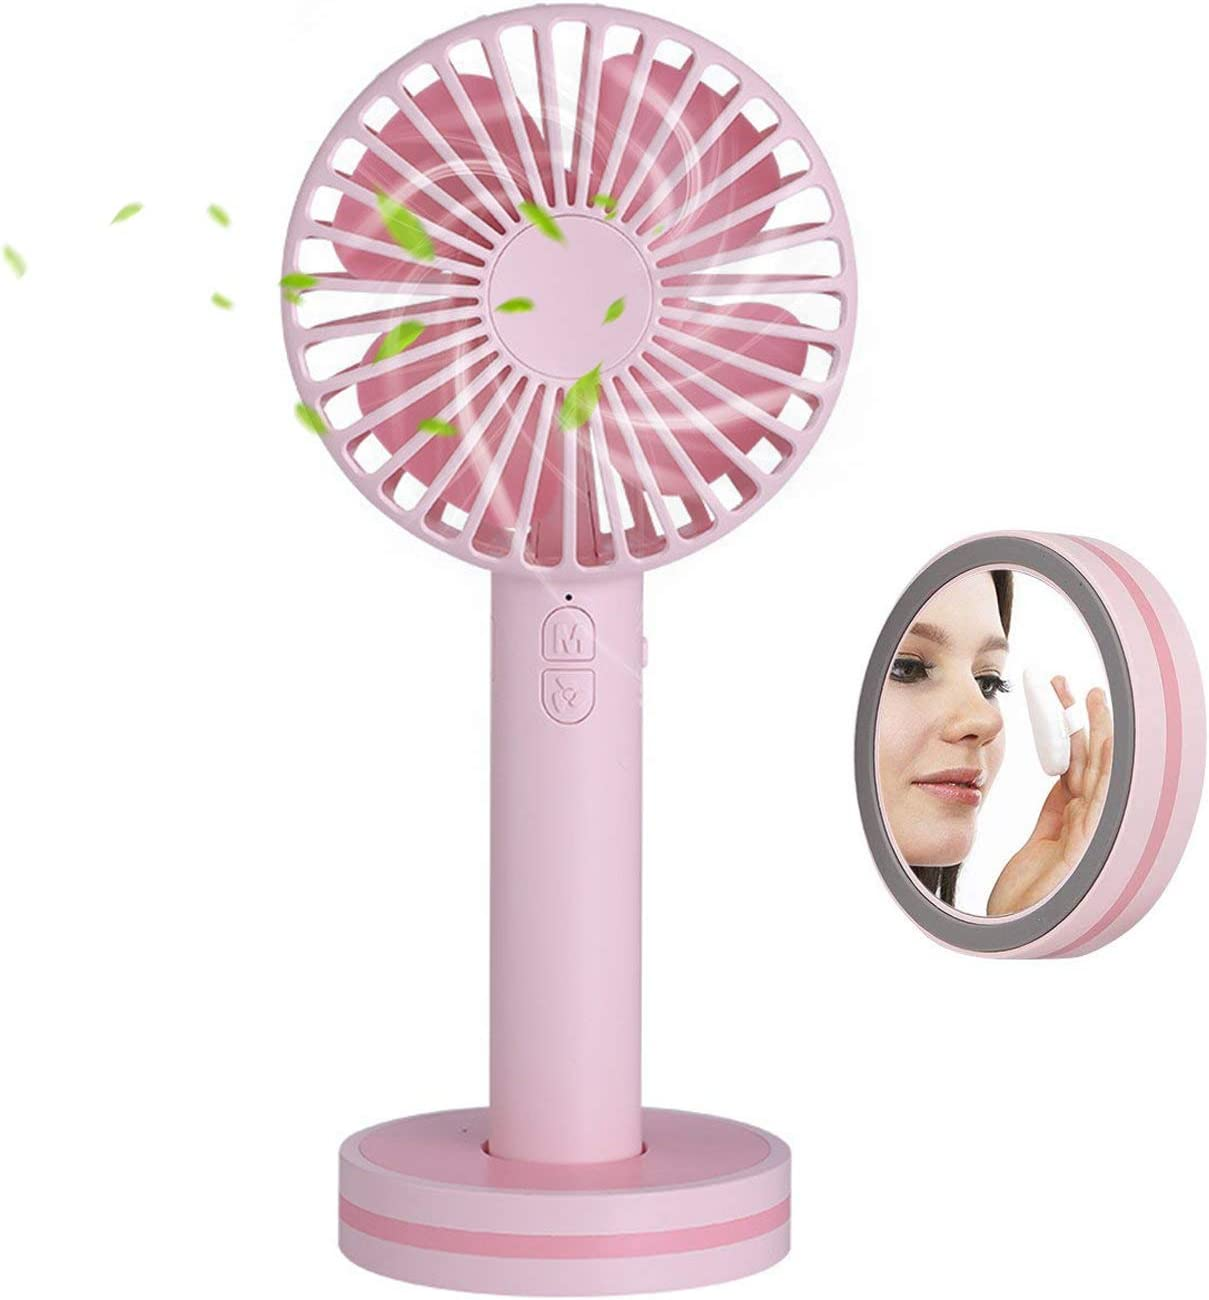 Mini Handheld Fan,Portable Personal Desktop Cooling Fan,Desk Macaron USB Rechargeable Fan with Gust Mode and Magnetic Mirror Base for Office Outdoor Household Traveling 3 Speed,Pink